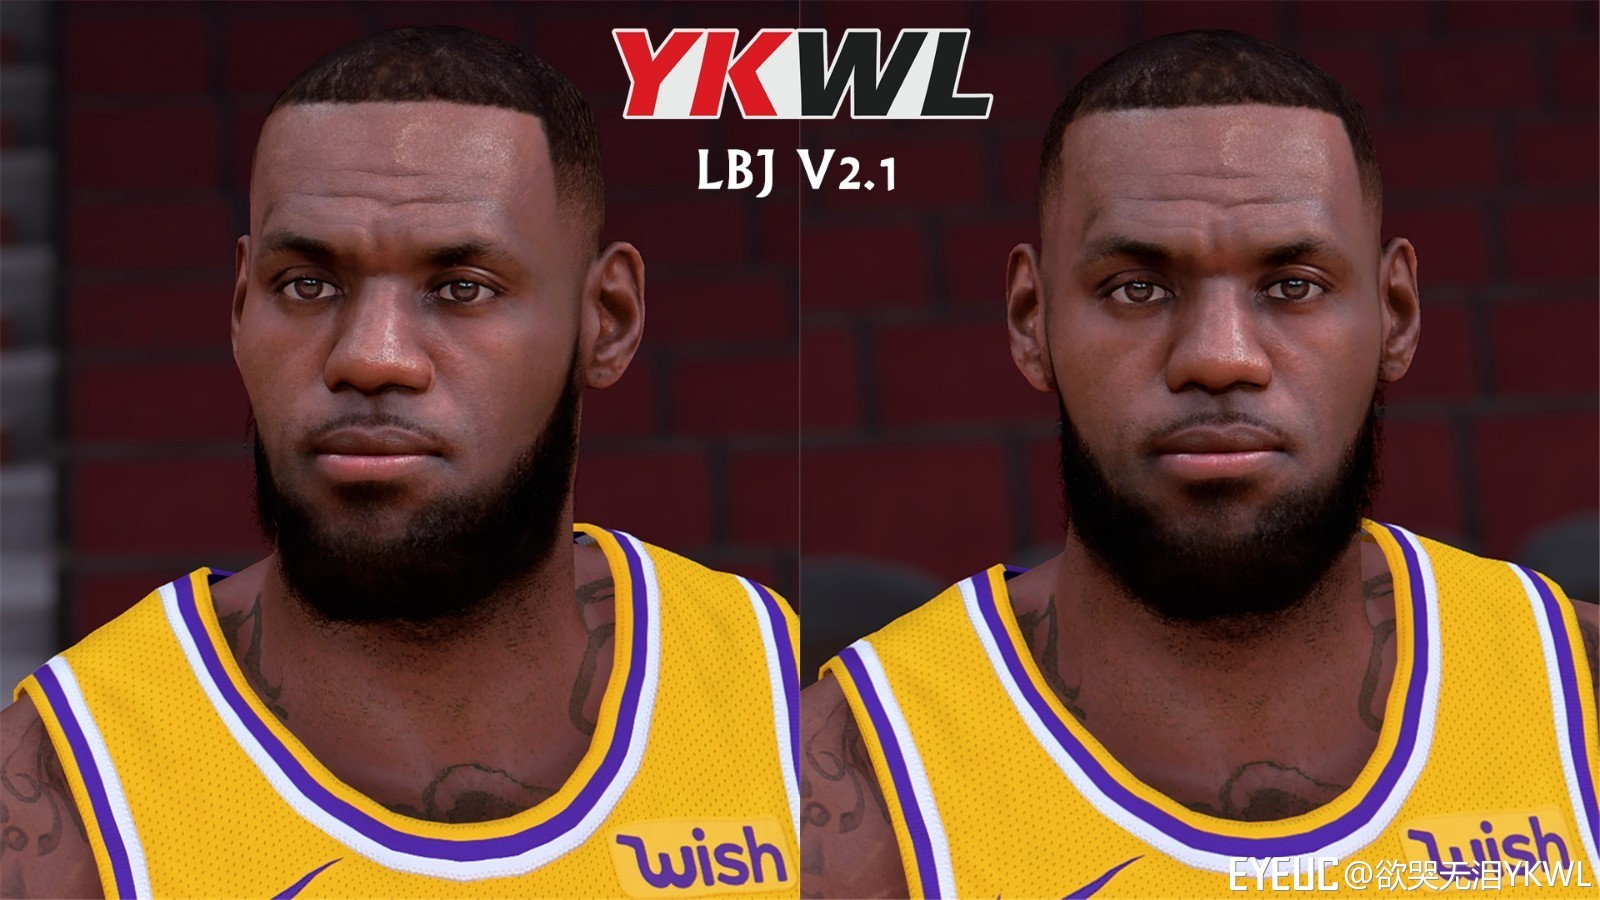 f1802f5a8995 195600eosofvoo3psfdpho. Download  Click Here. Author  YKWL.  143453z40aat60bd1iu66h. Tags   Cyberfaces   LeBron James   NBA 2K19    Shuajota